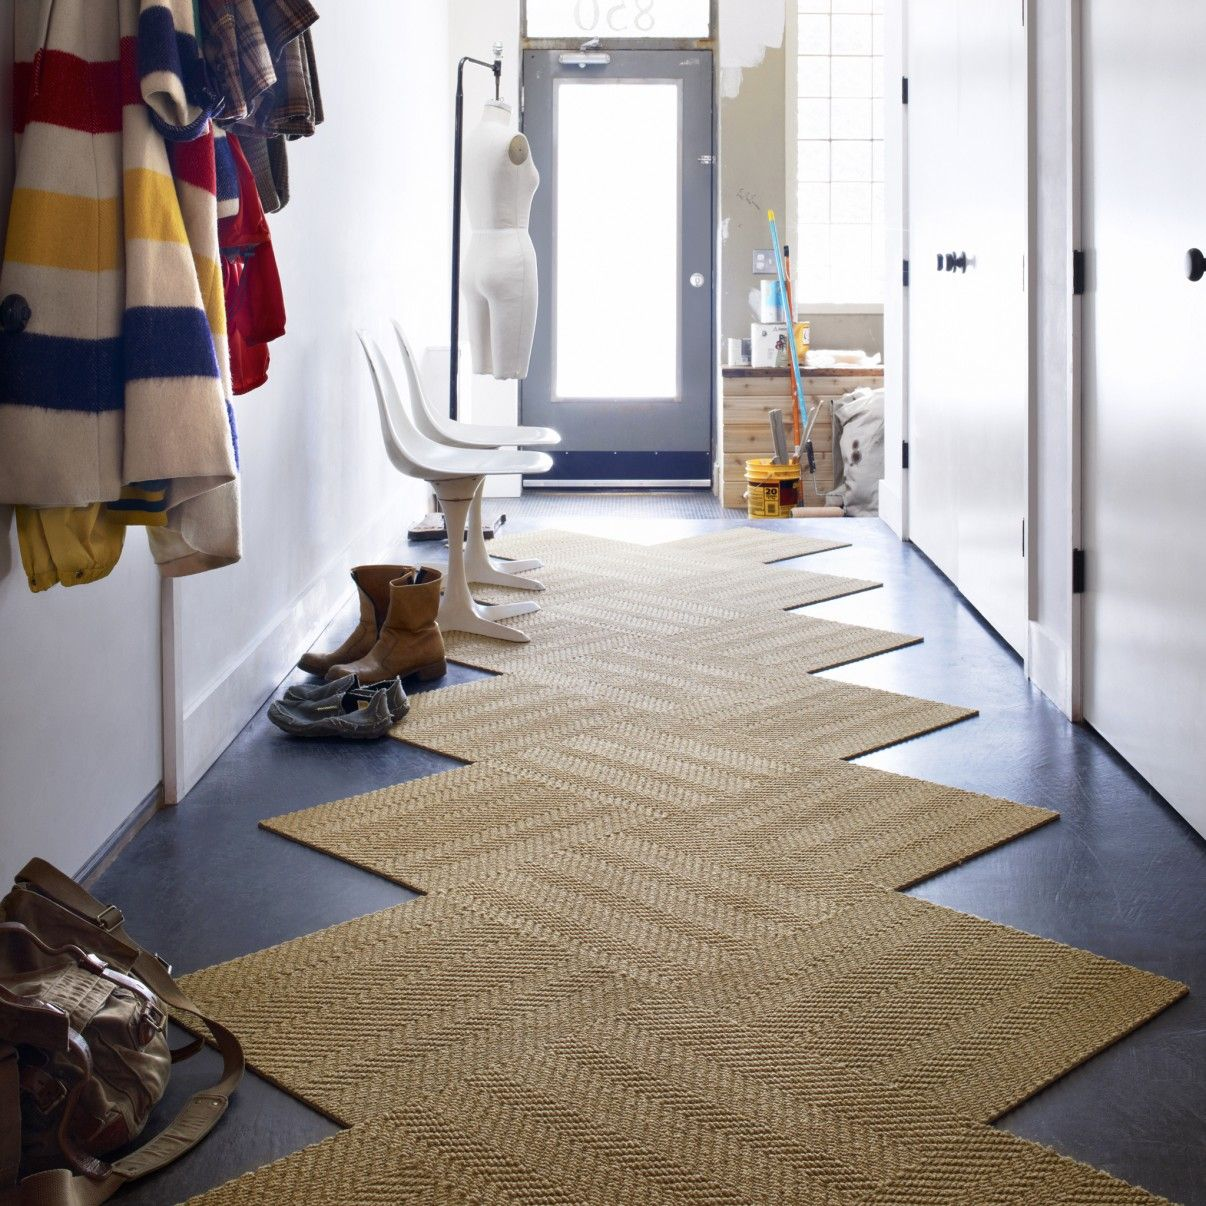 Need A Custom Size Rug For A Hallway Or Entryway? Use Carpet Tiles To